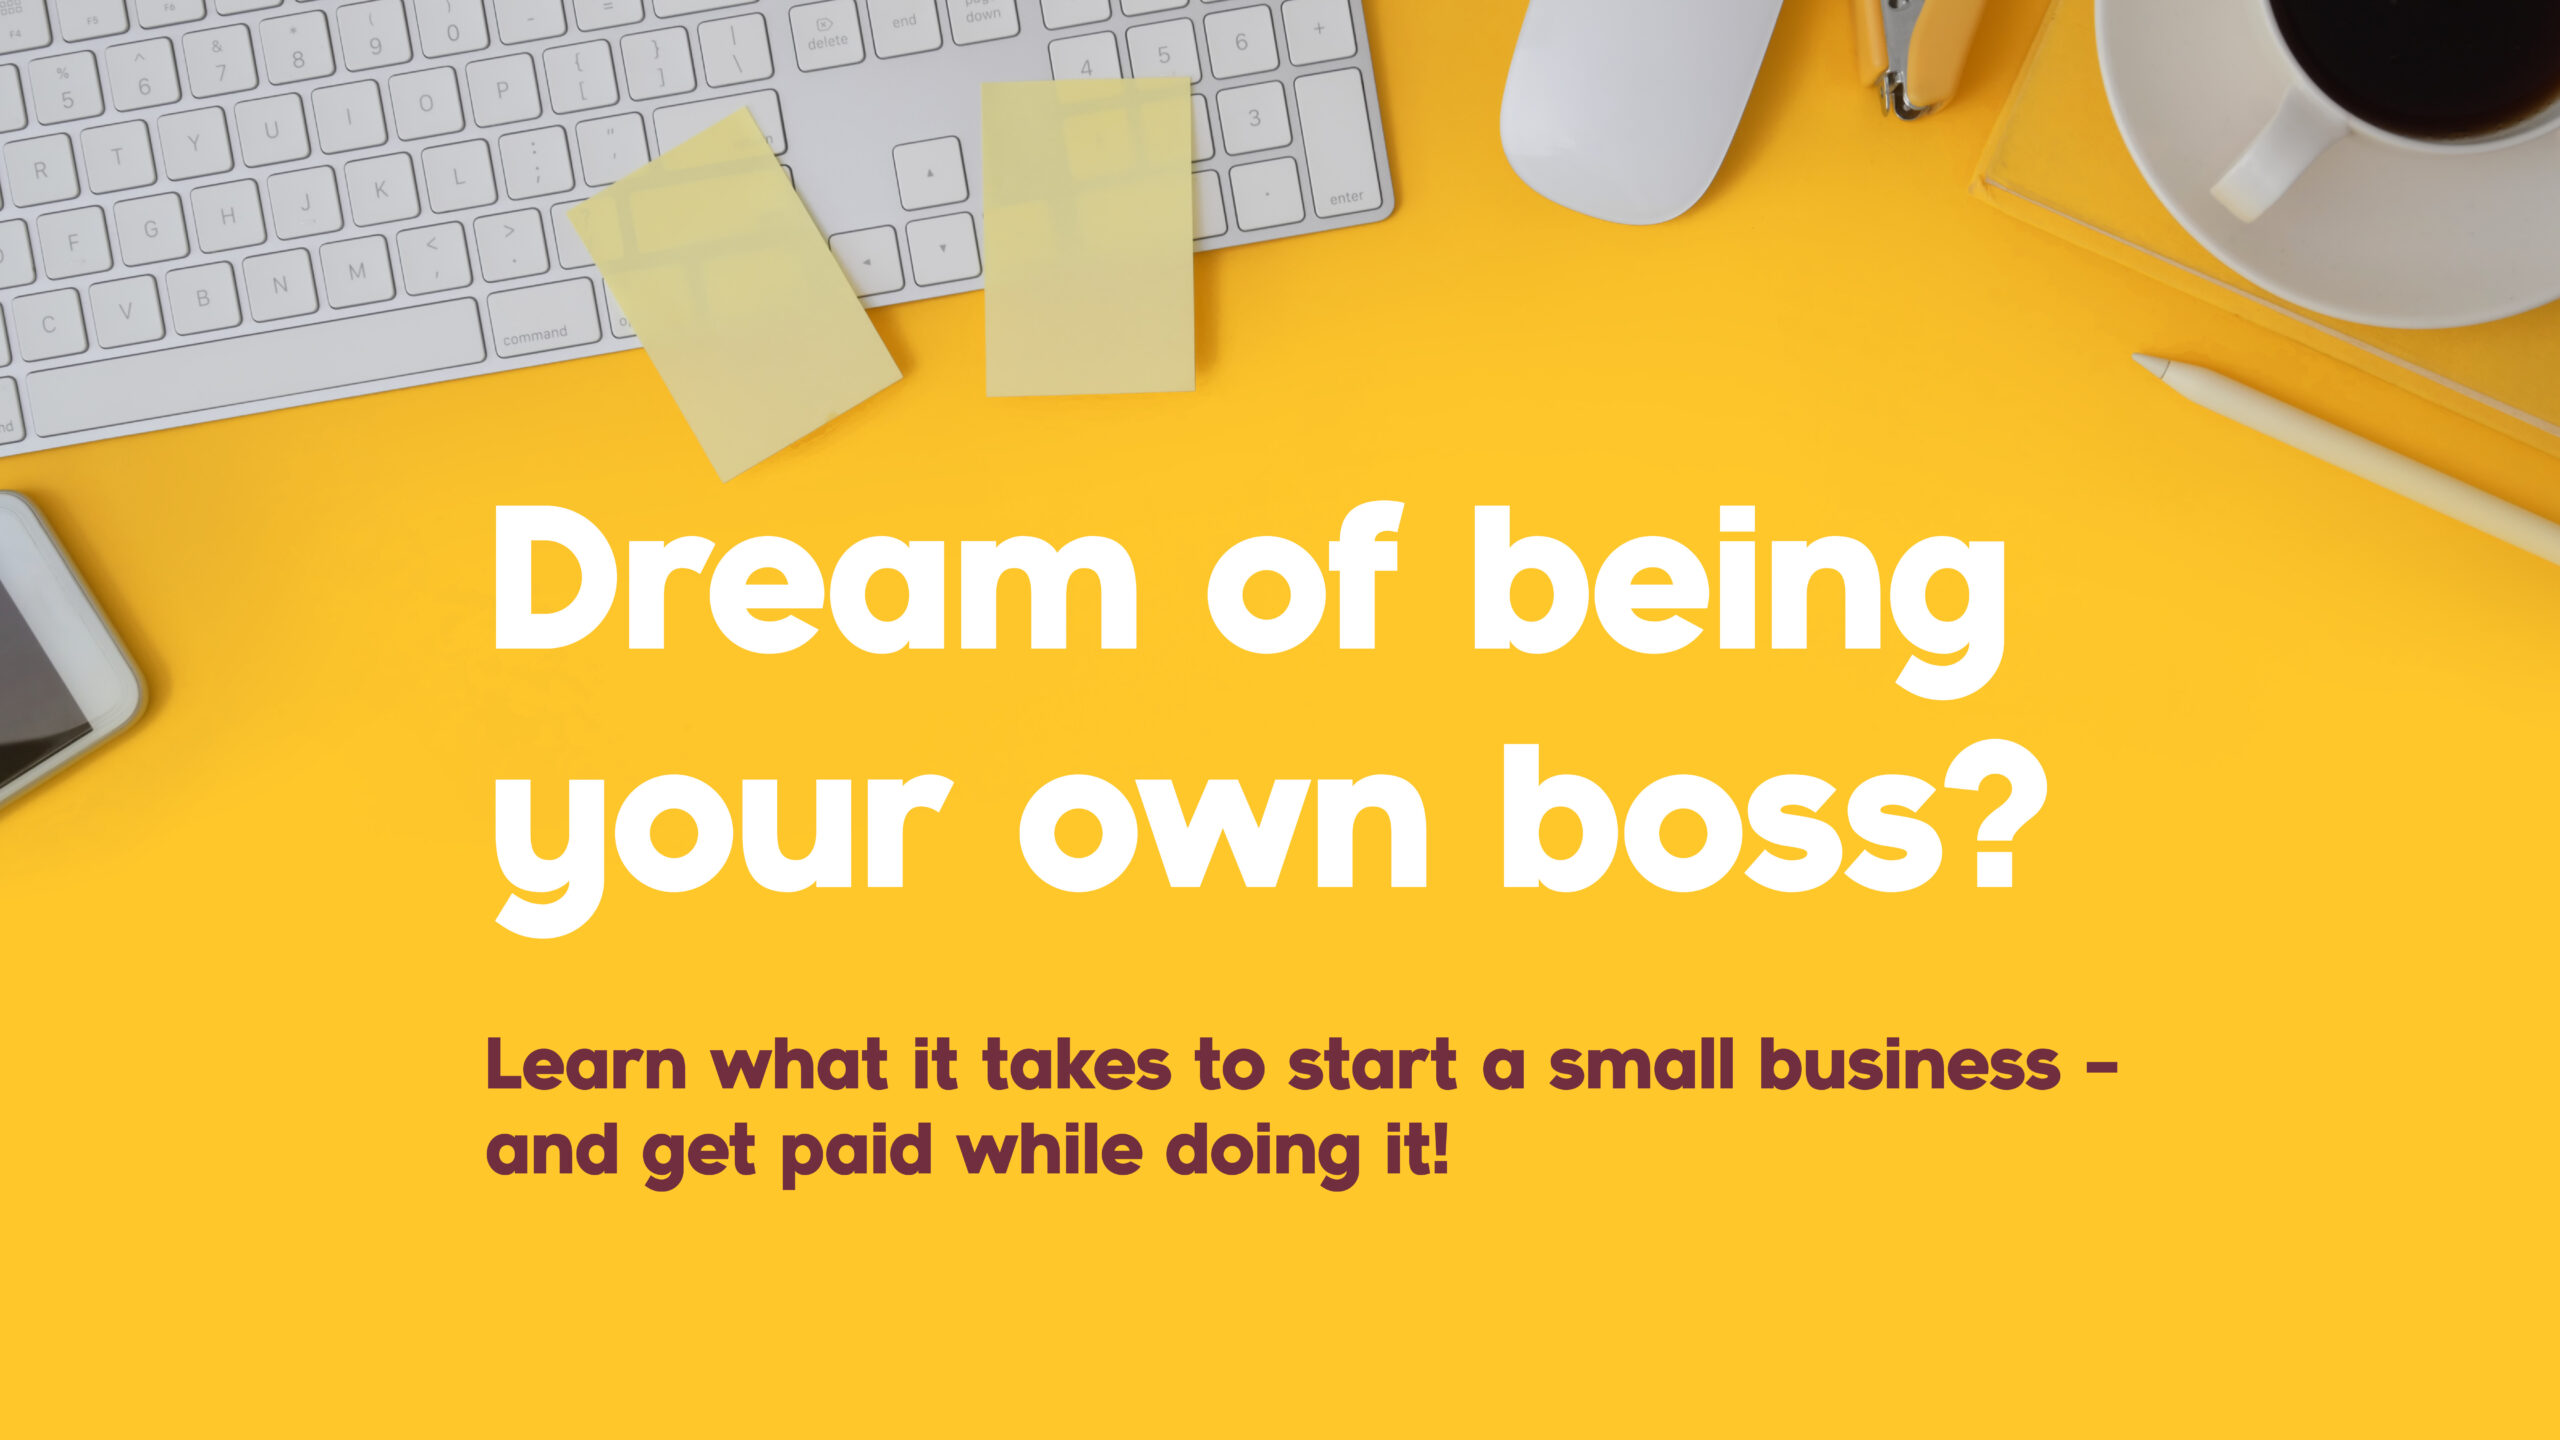 Dream of being your own boss? Learn what it takes to start a small business – and get paid while doing it!